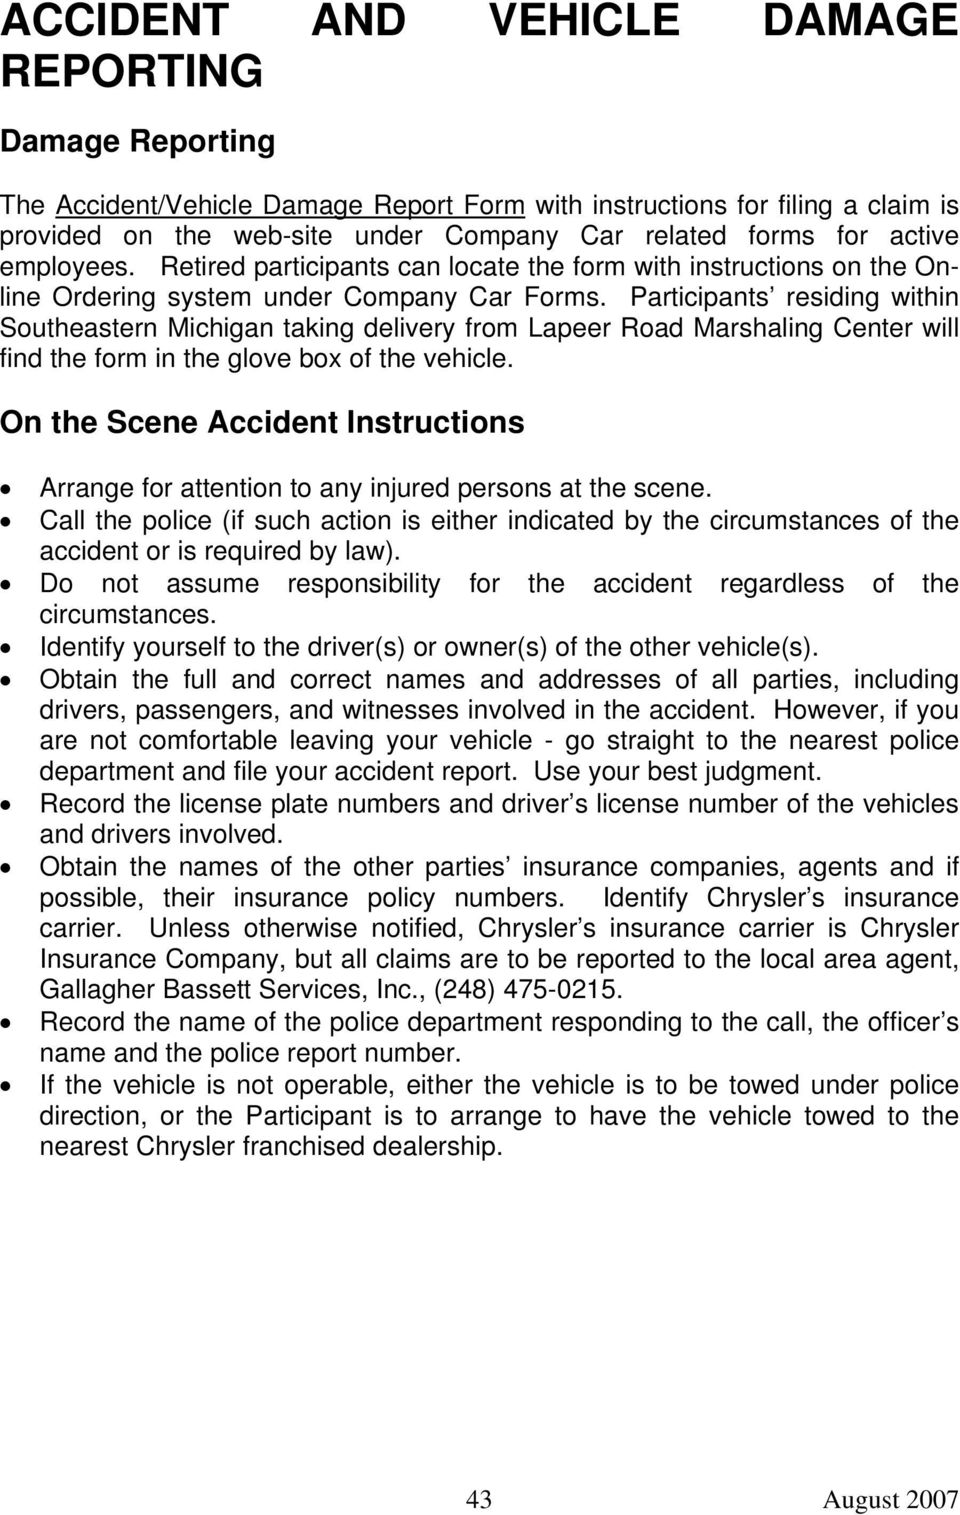 ACCIDENT AND VEHICLE DAMAGE REPORTING - PDF